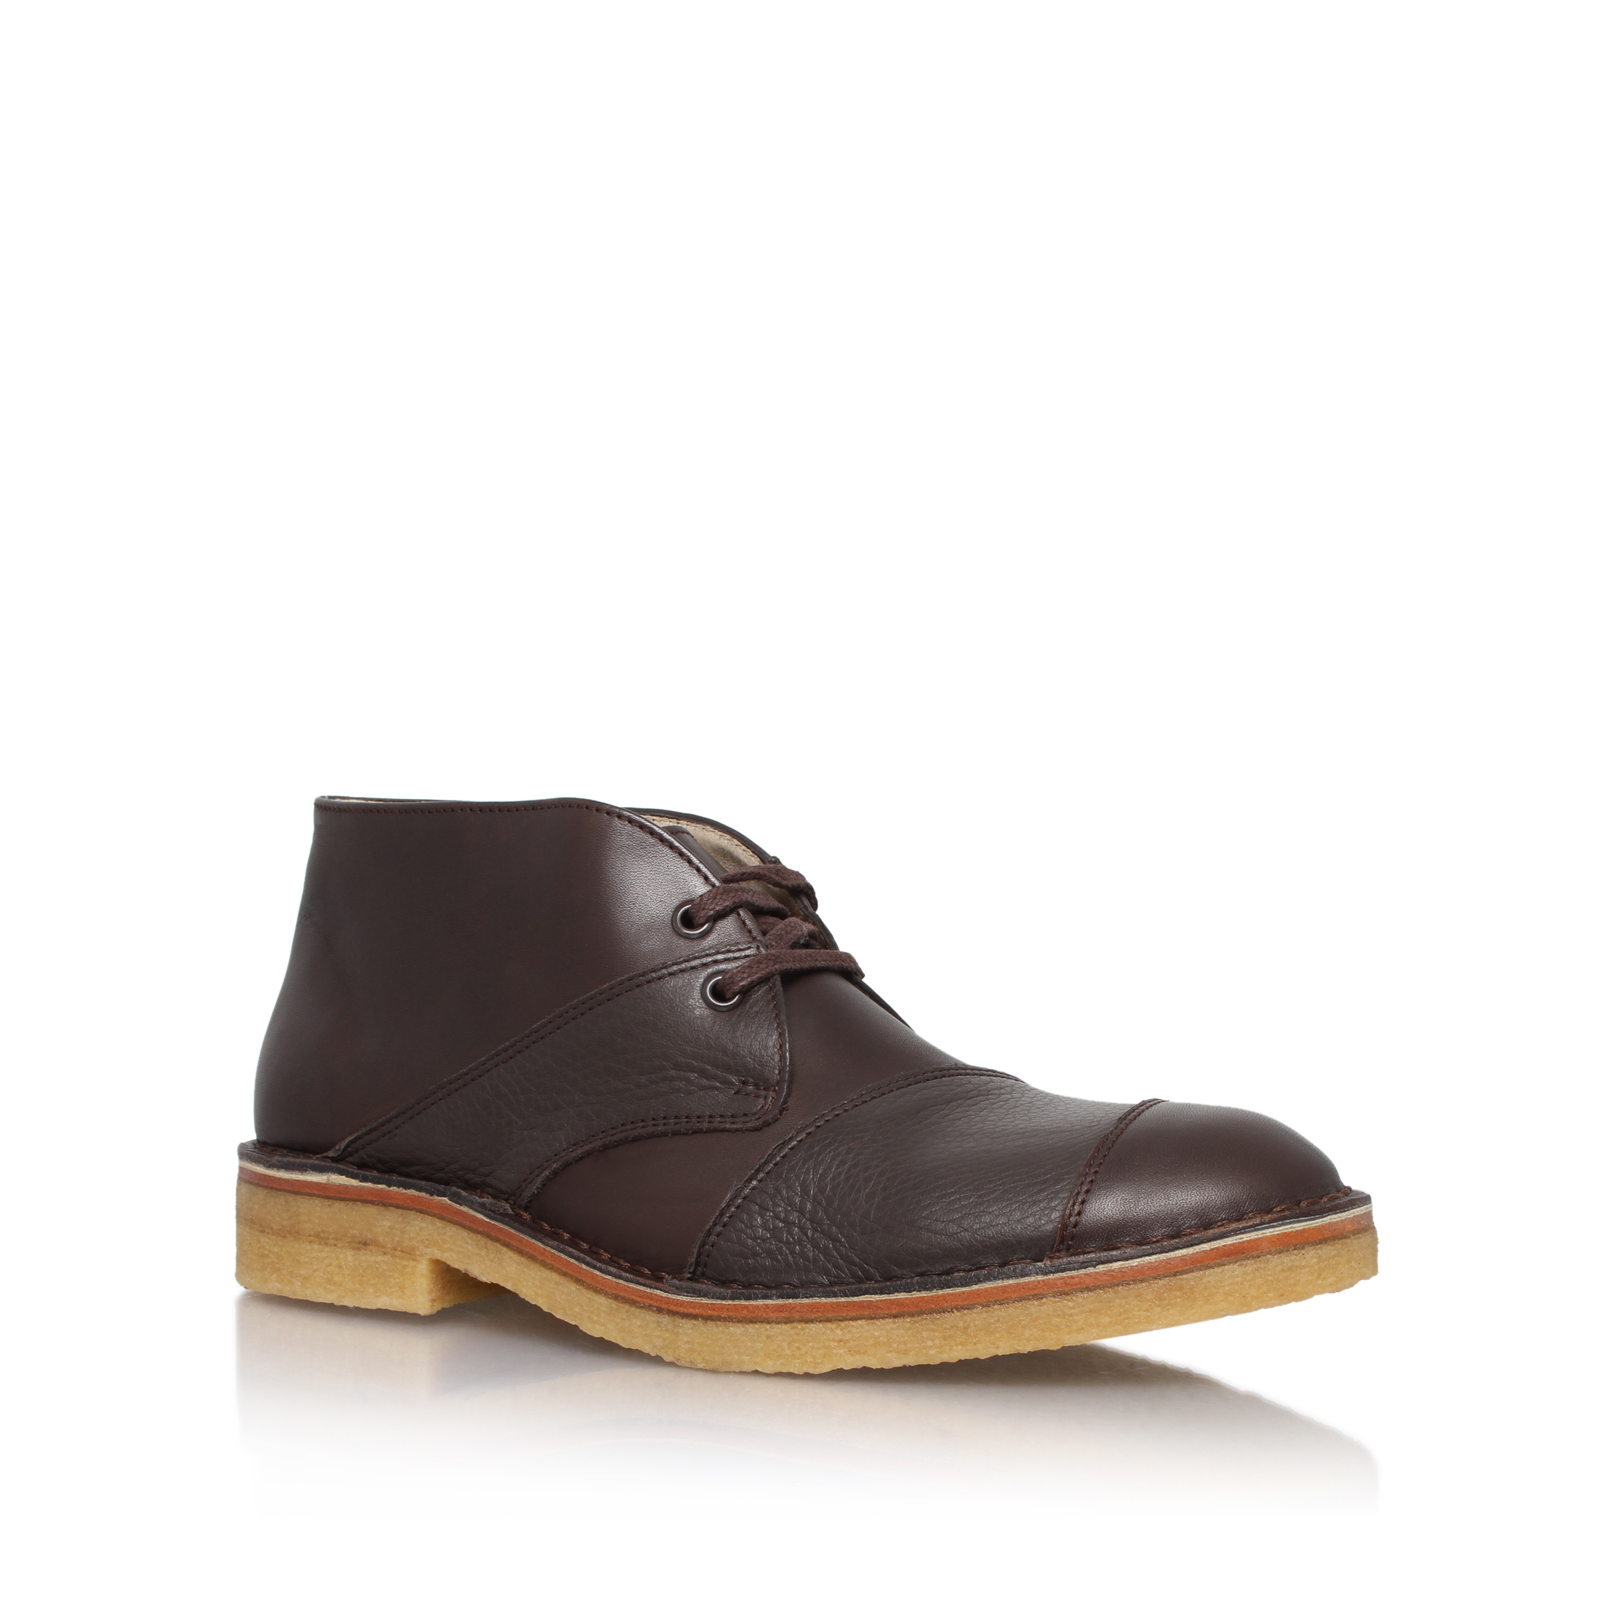 PANELLED CHUKKA BOOT